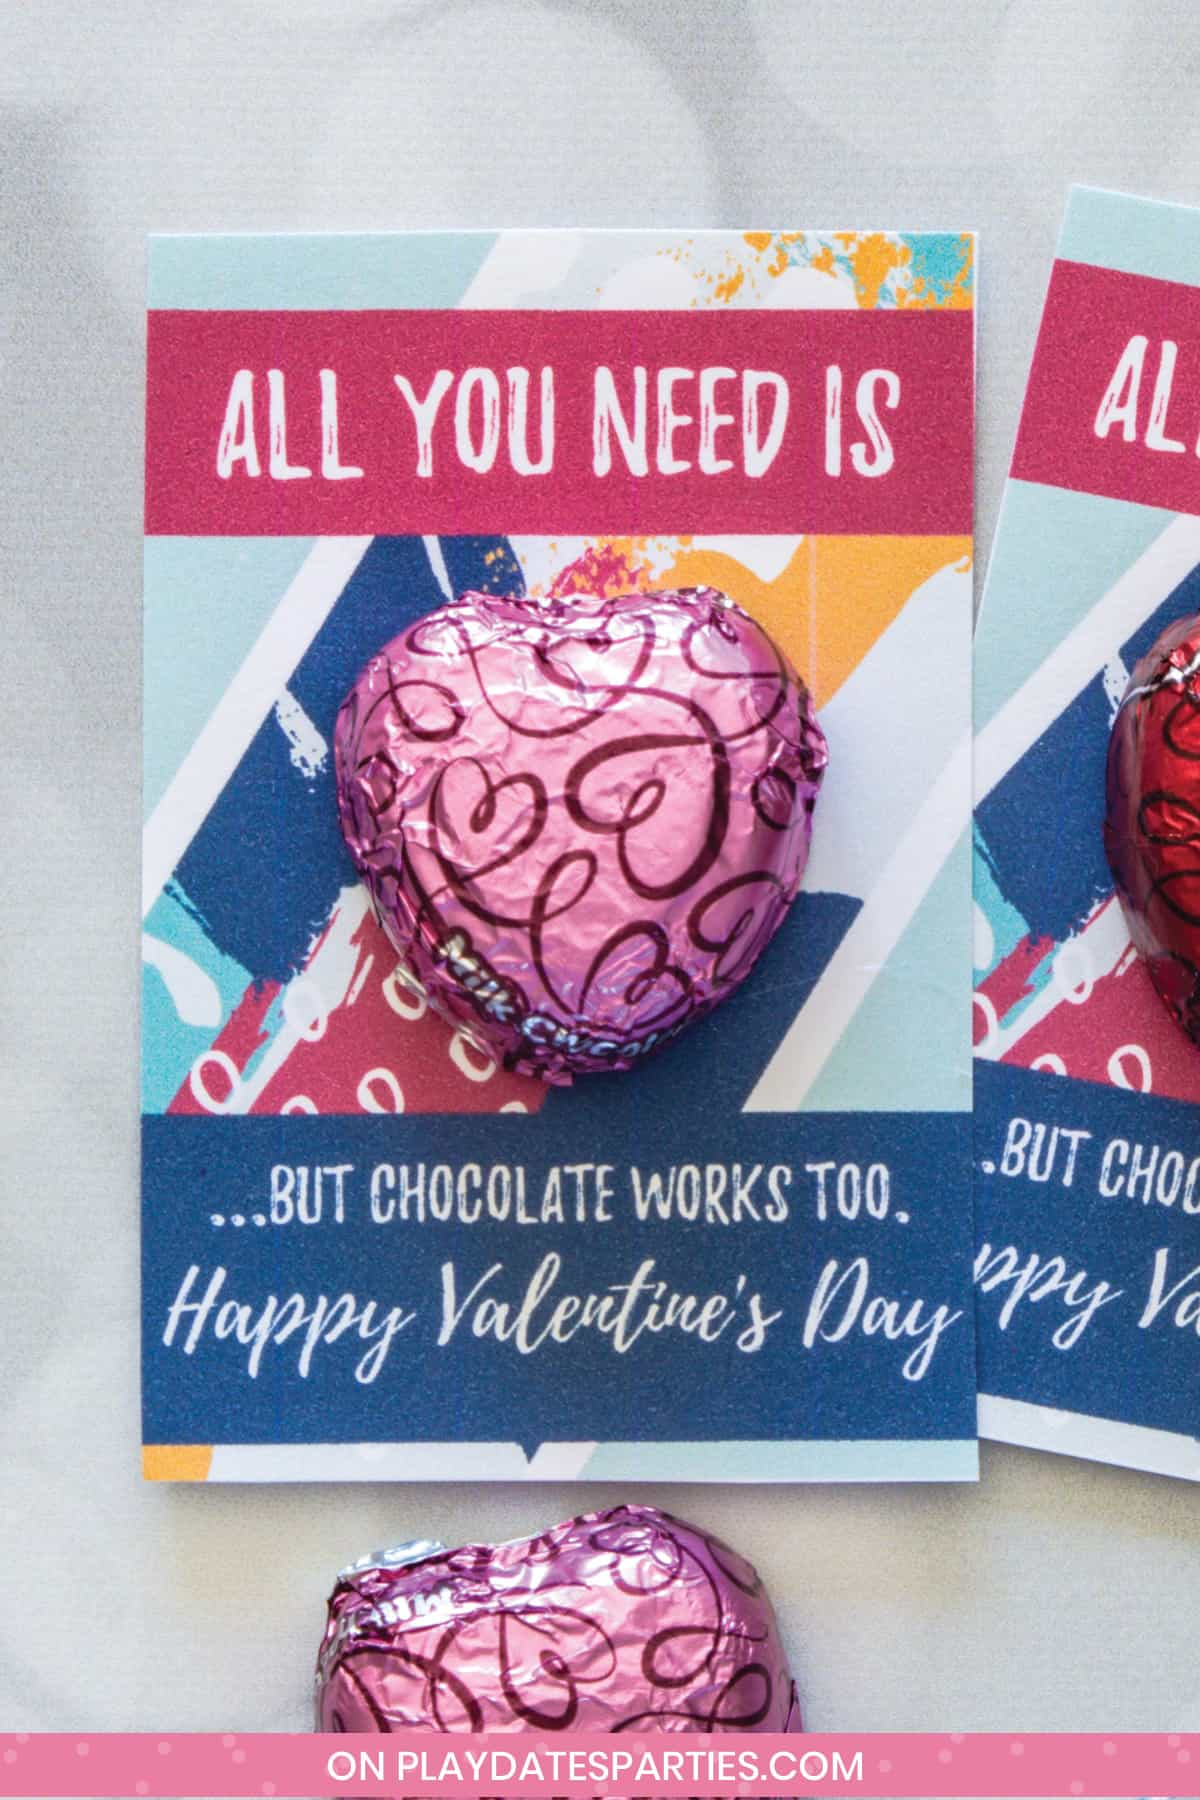 finished all you need is love chocolate valentine card with a pink chocolate heart on a gray surface